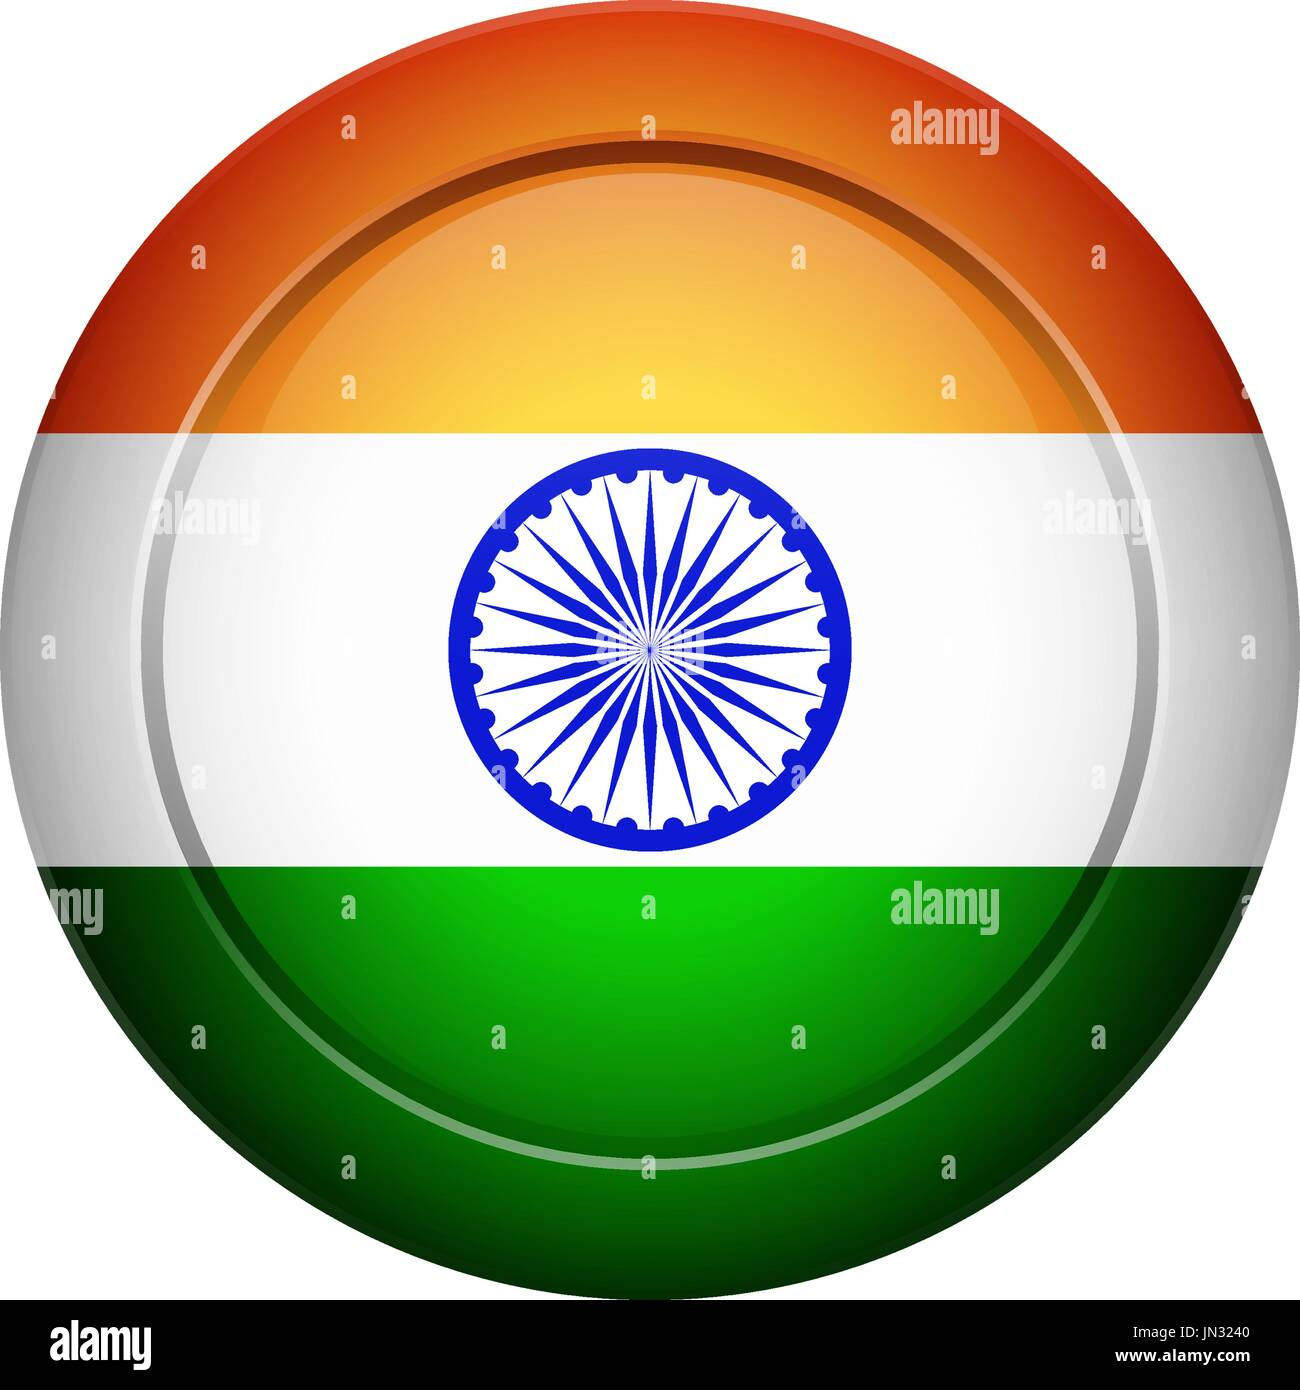 Flag design. Indian flag on the round button. Isolated template for ...